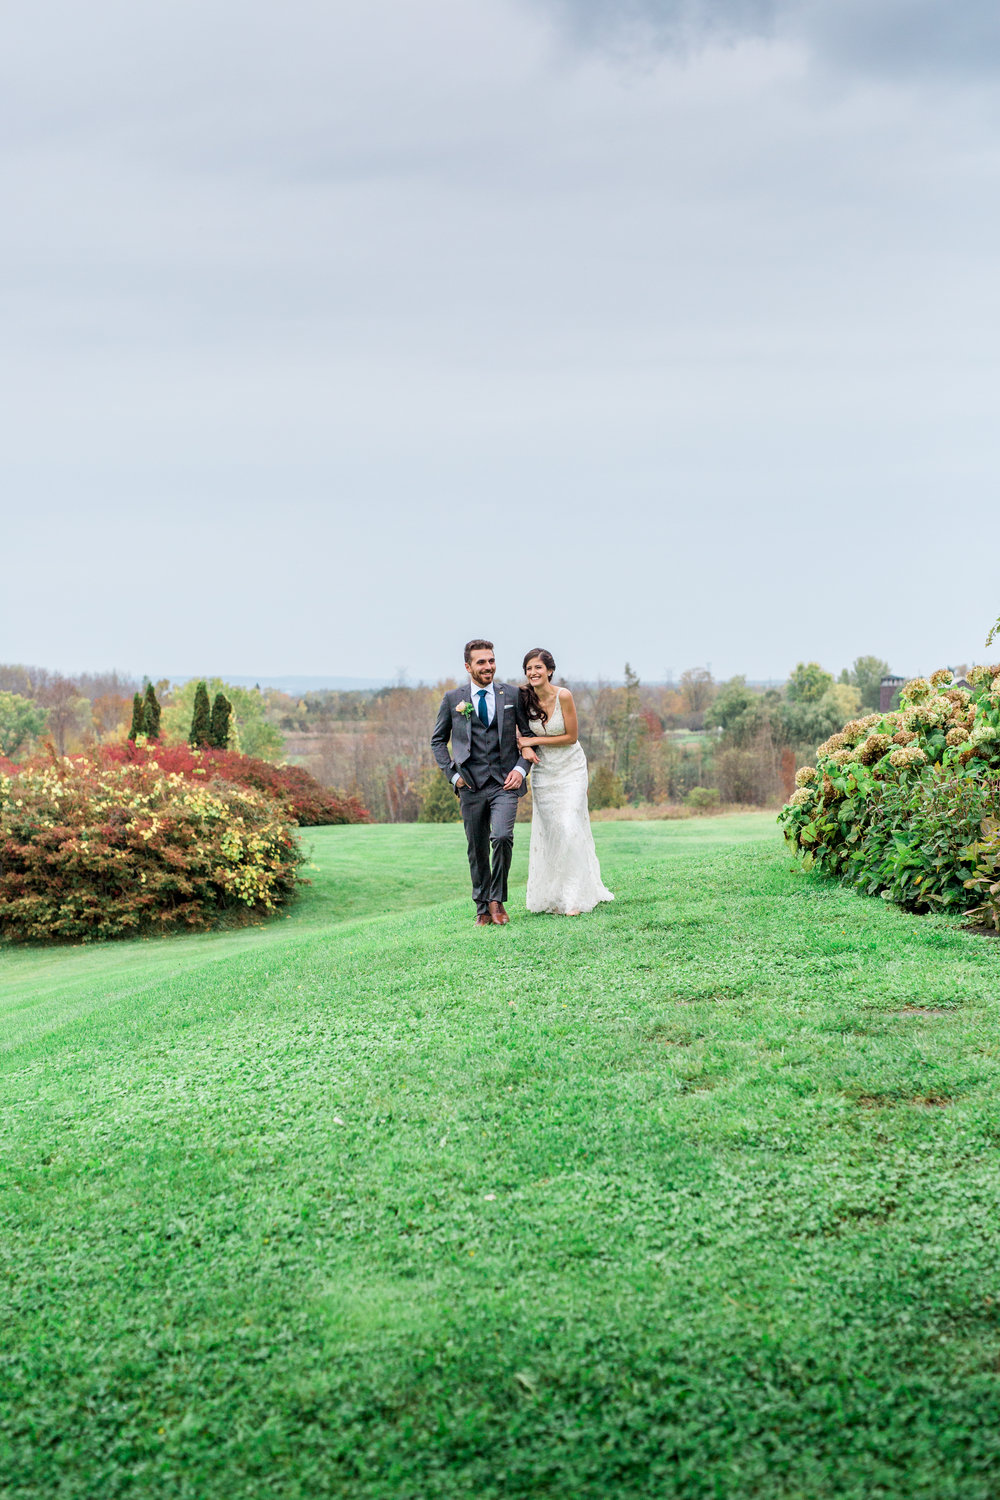 Amir-Golbazi-Danielle-Giroux-Photography_Toronto-Wedding_Cedarwood_Rachel-Paul_449.jpg